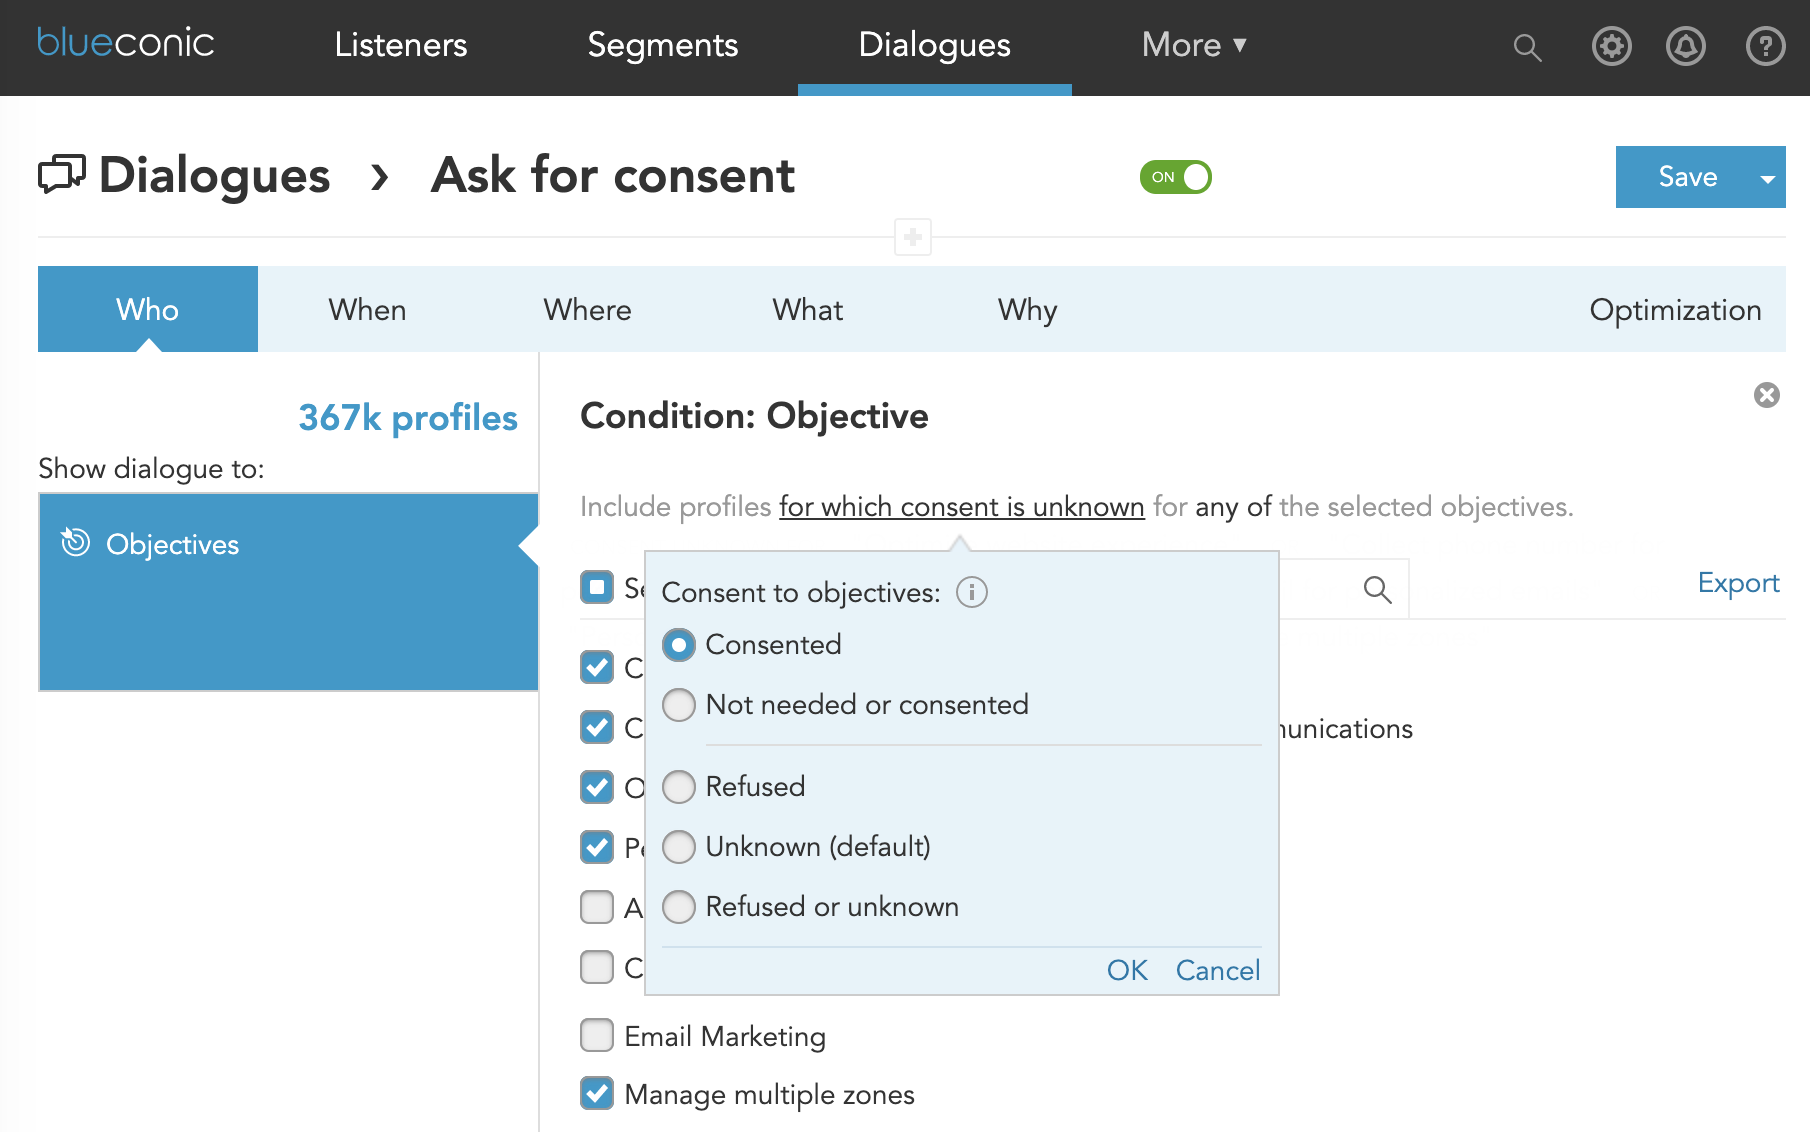 How do I let customers ask for privacy and marketing consent before customer profiling in BlueConic?